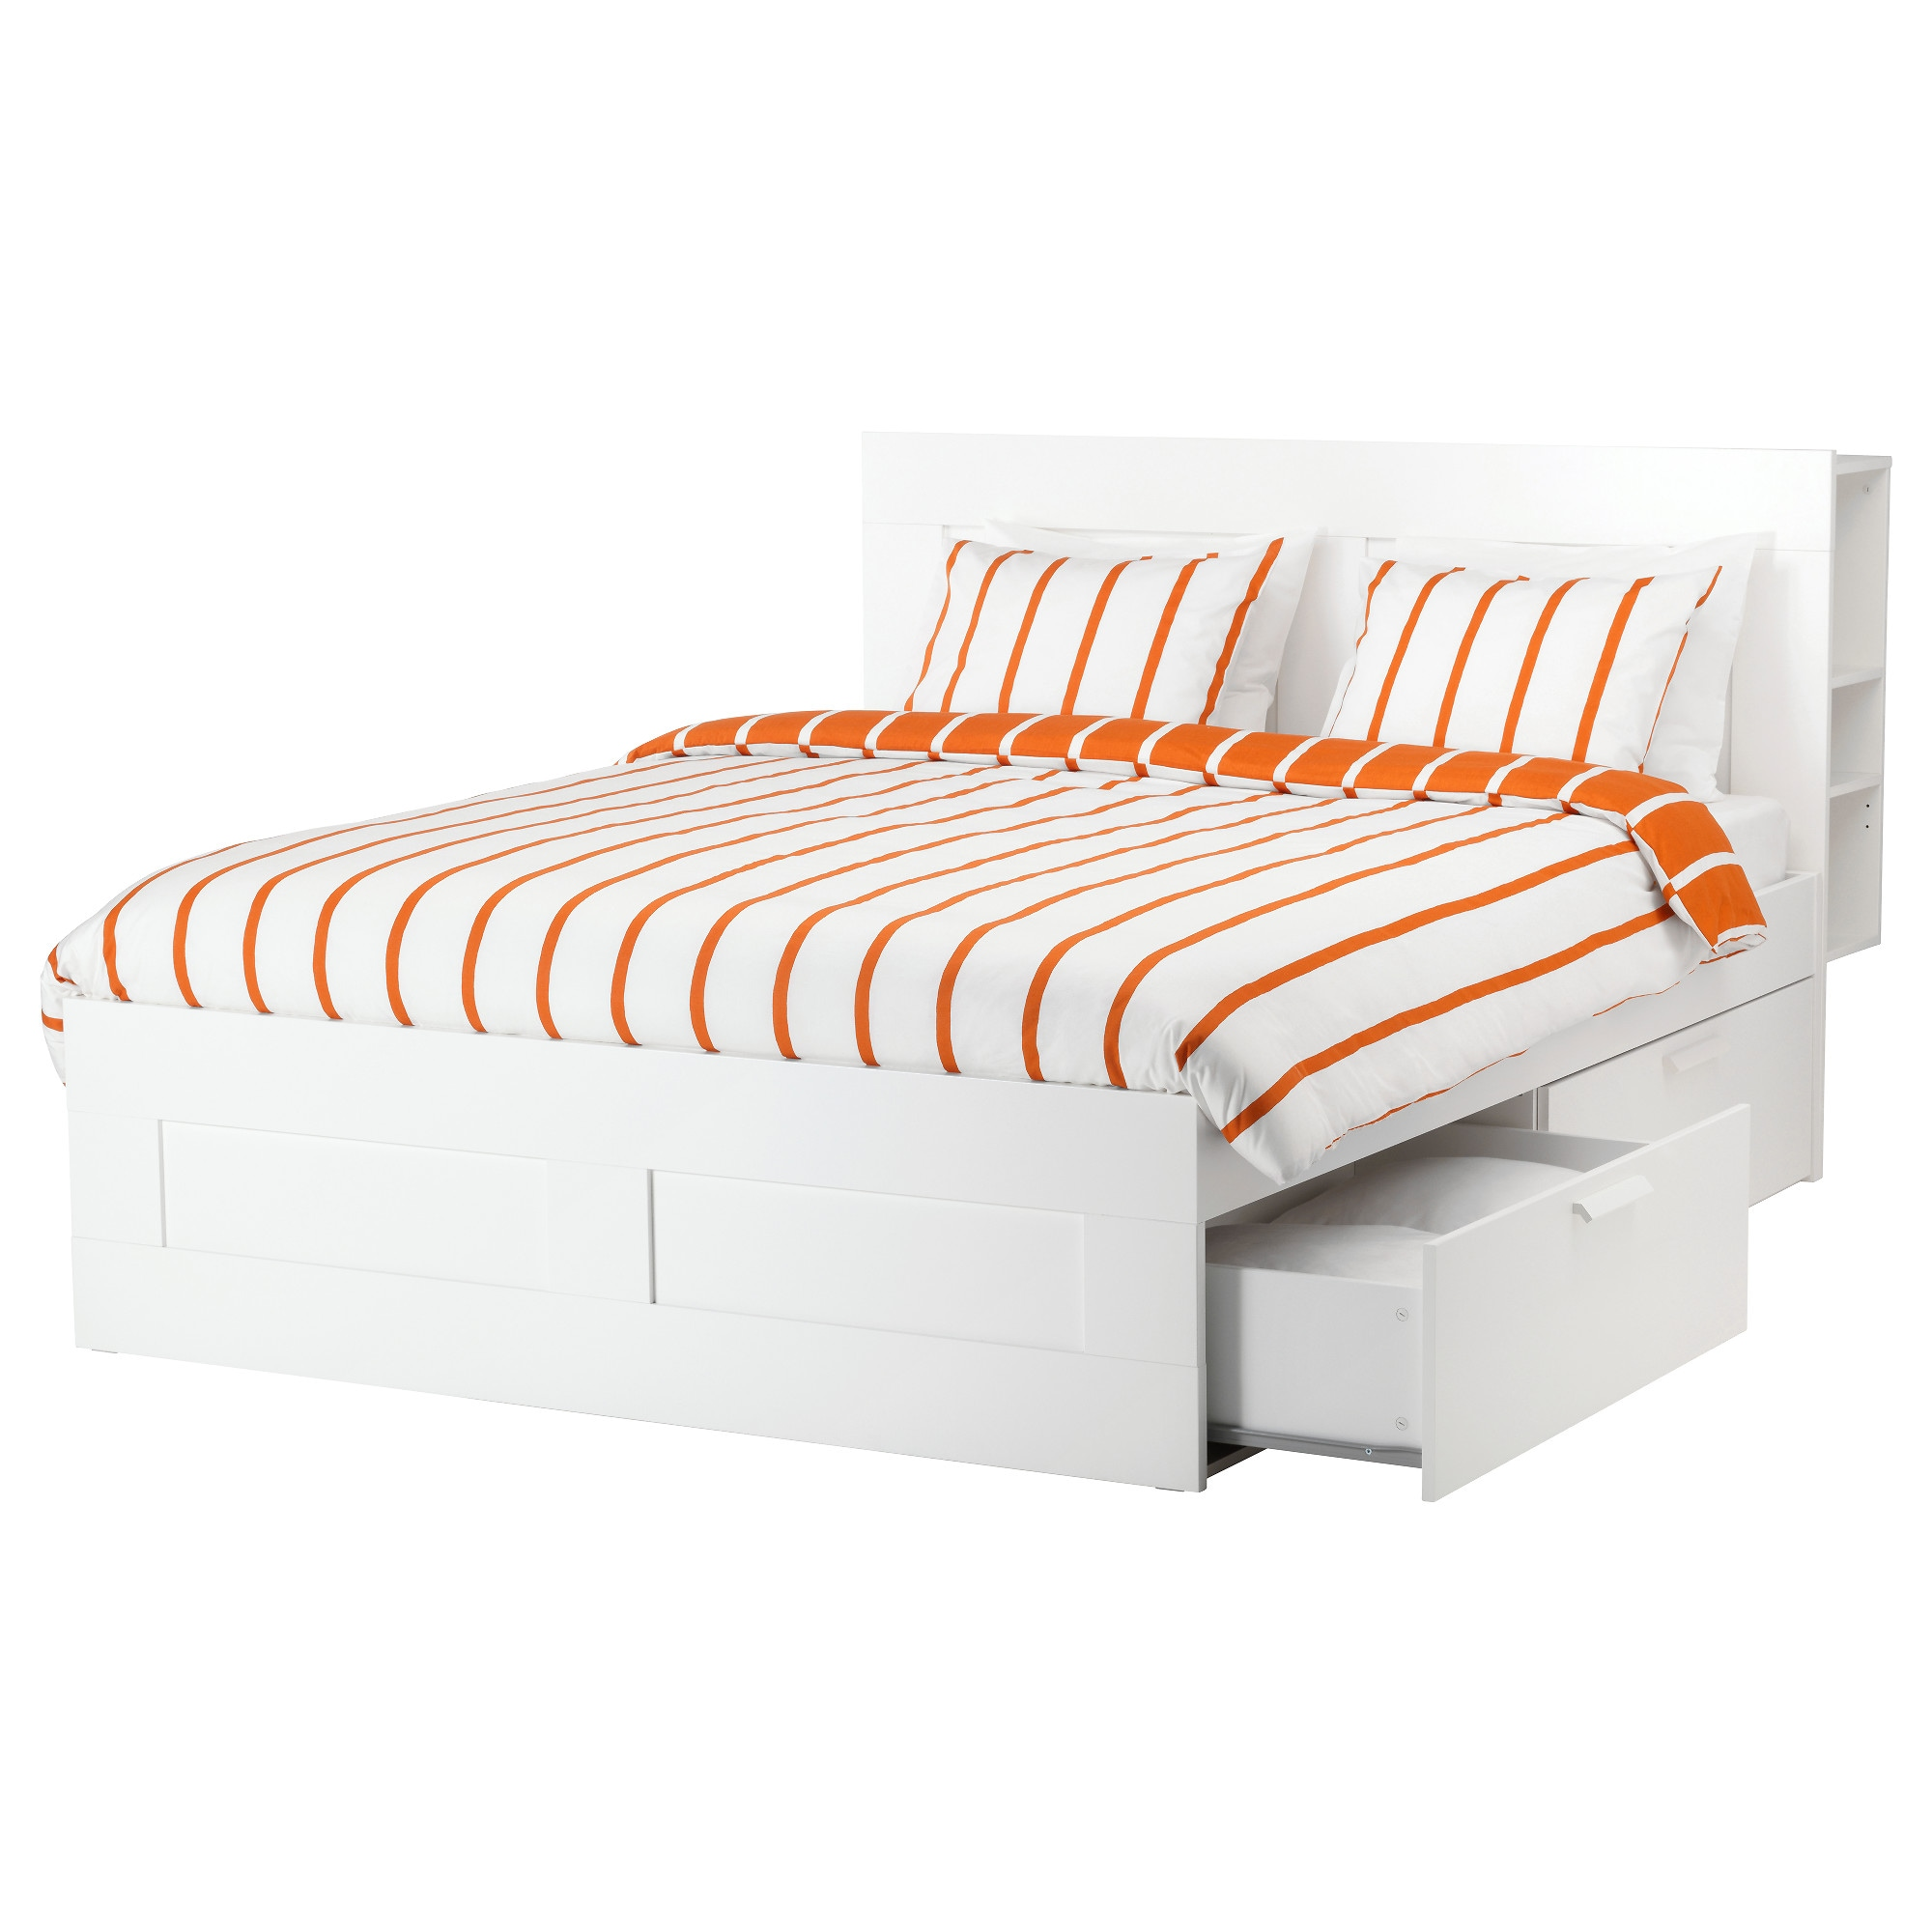 Bed frame with storage - Bed Frame With Storage 32